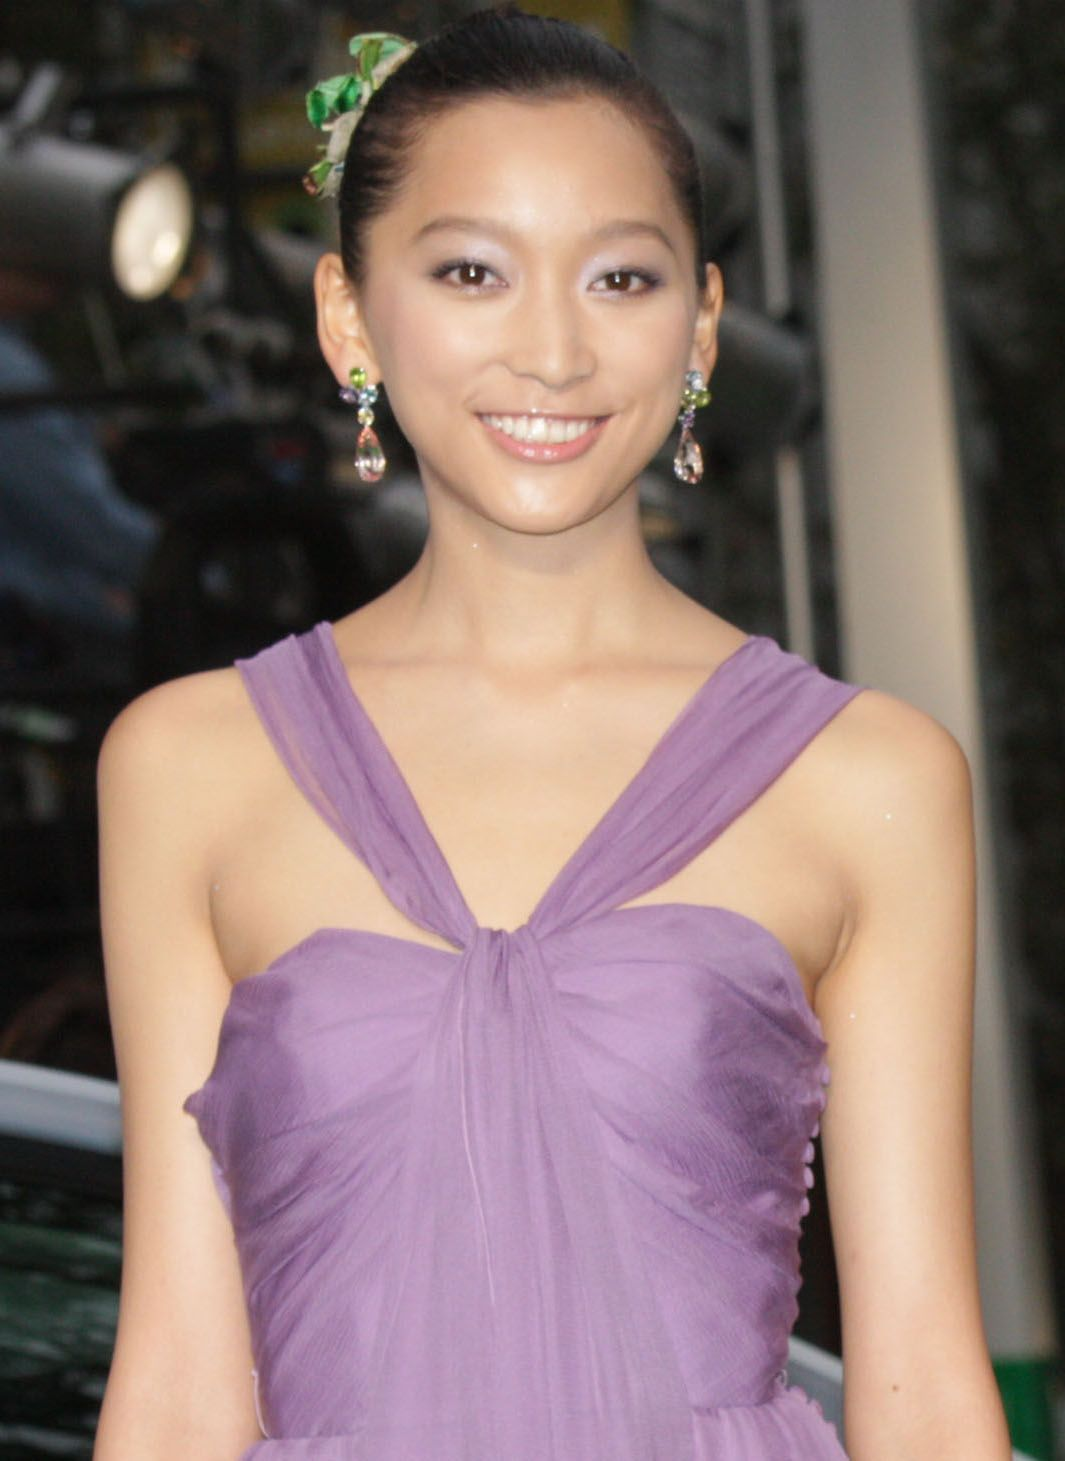 Anne Watanabe to star in NHK's new morning drama - Japan Today